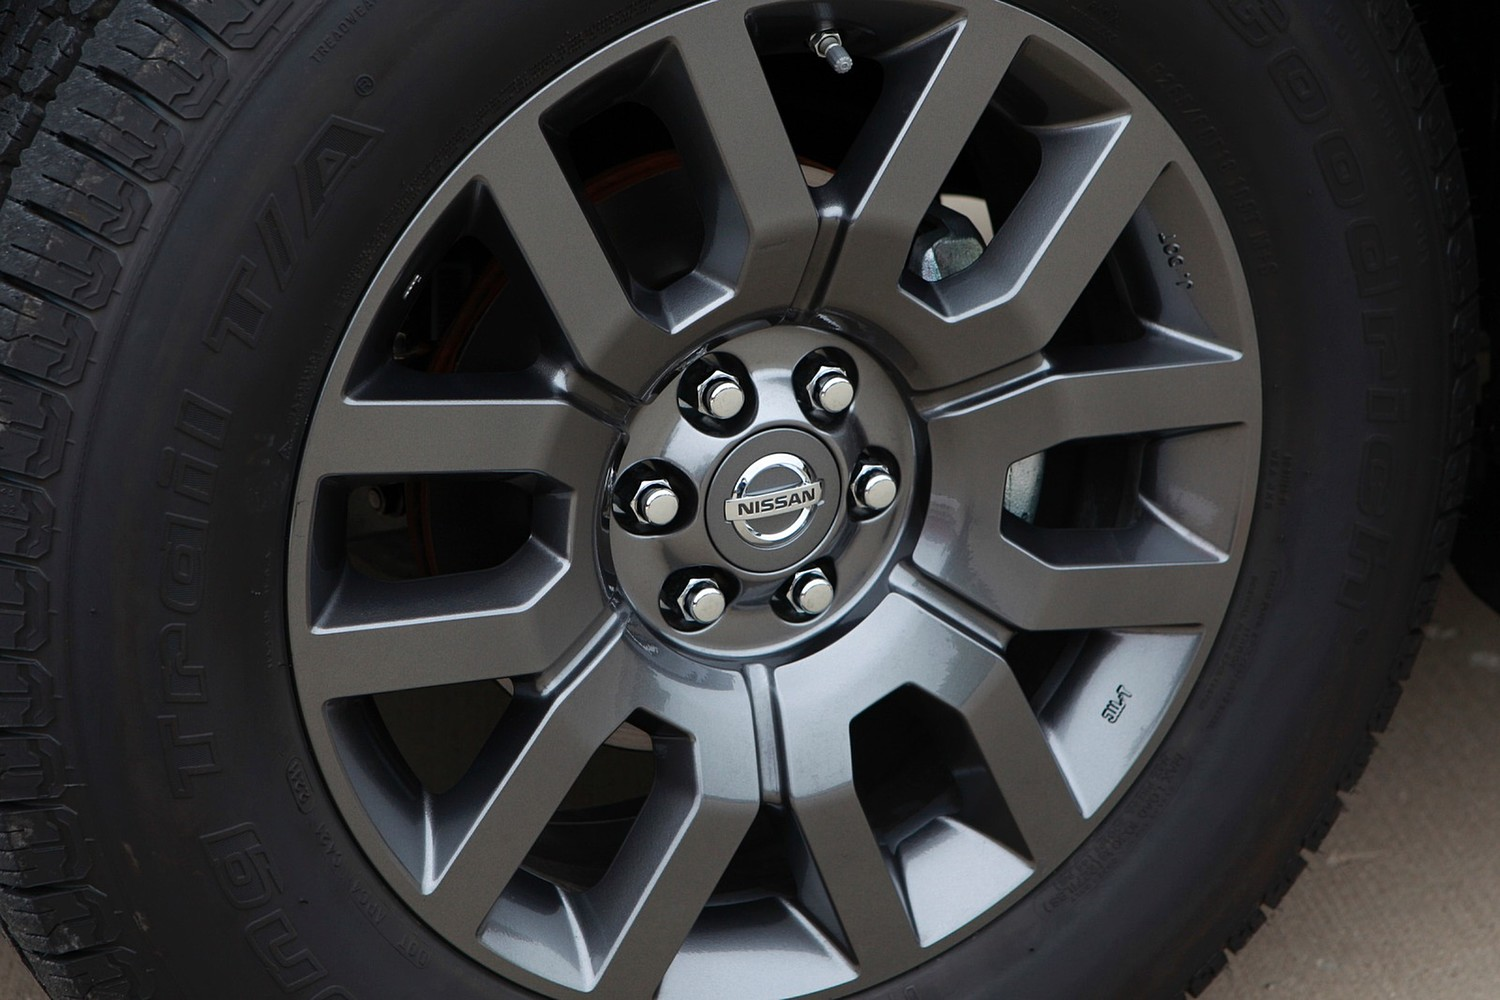 Nissan Frontier SV Extended Cab Pickup Wheel (2013 model year shown)